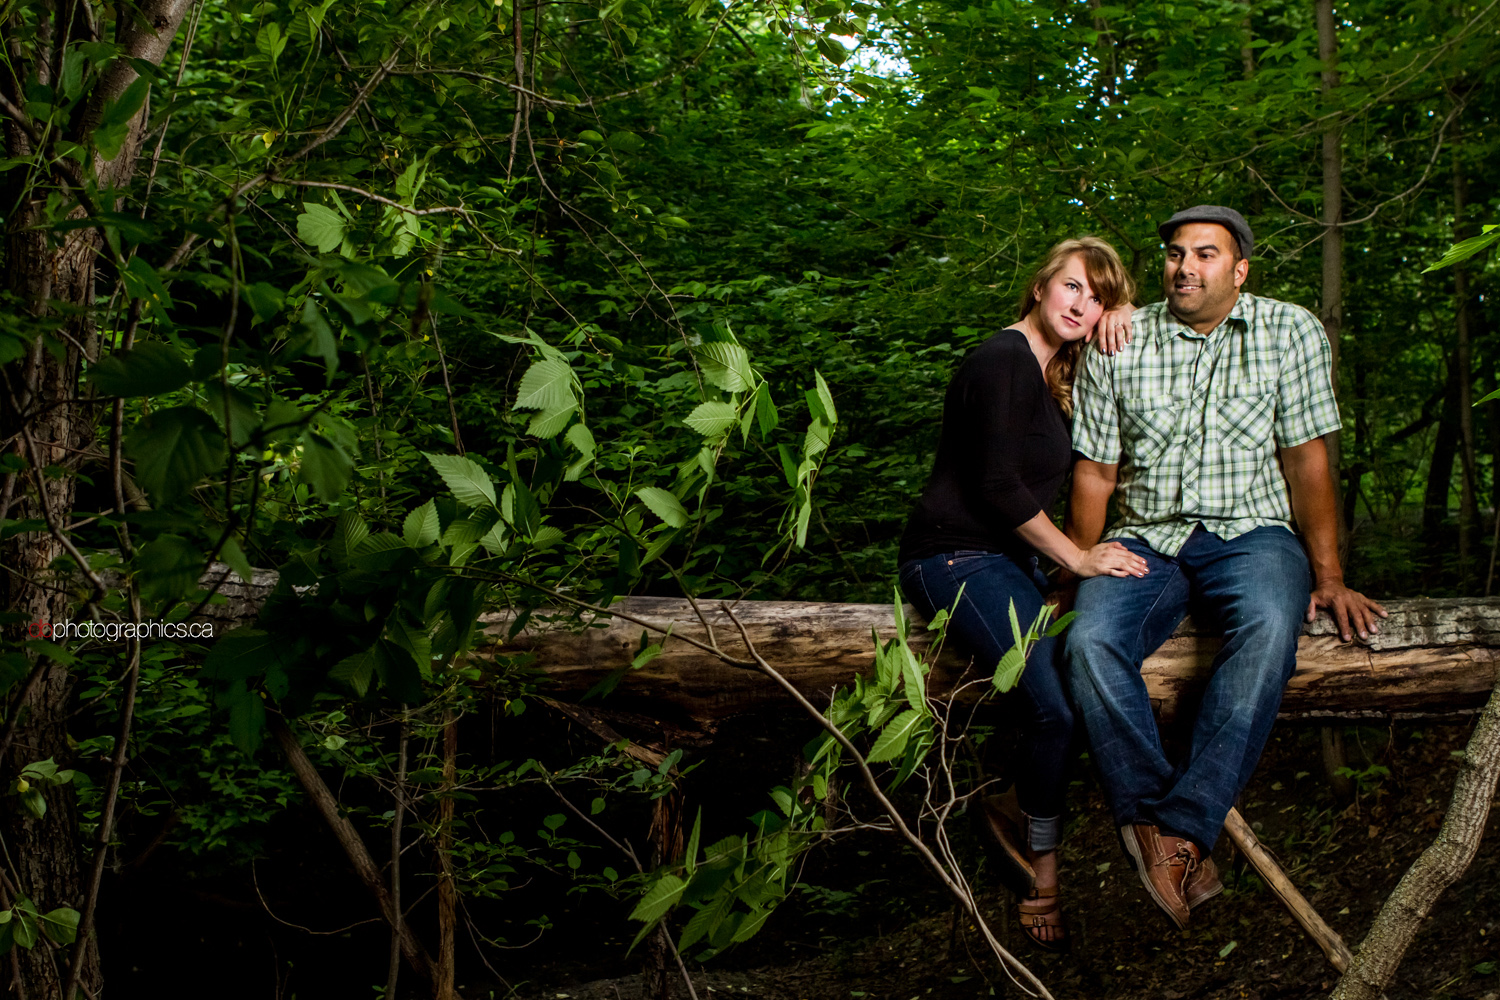 Amy & Ian Engagement Shoot - 20140626 - 0031.jpg